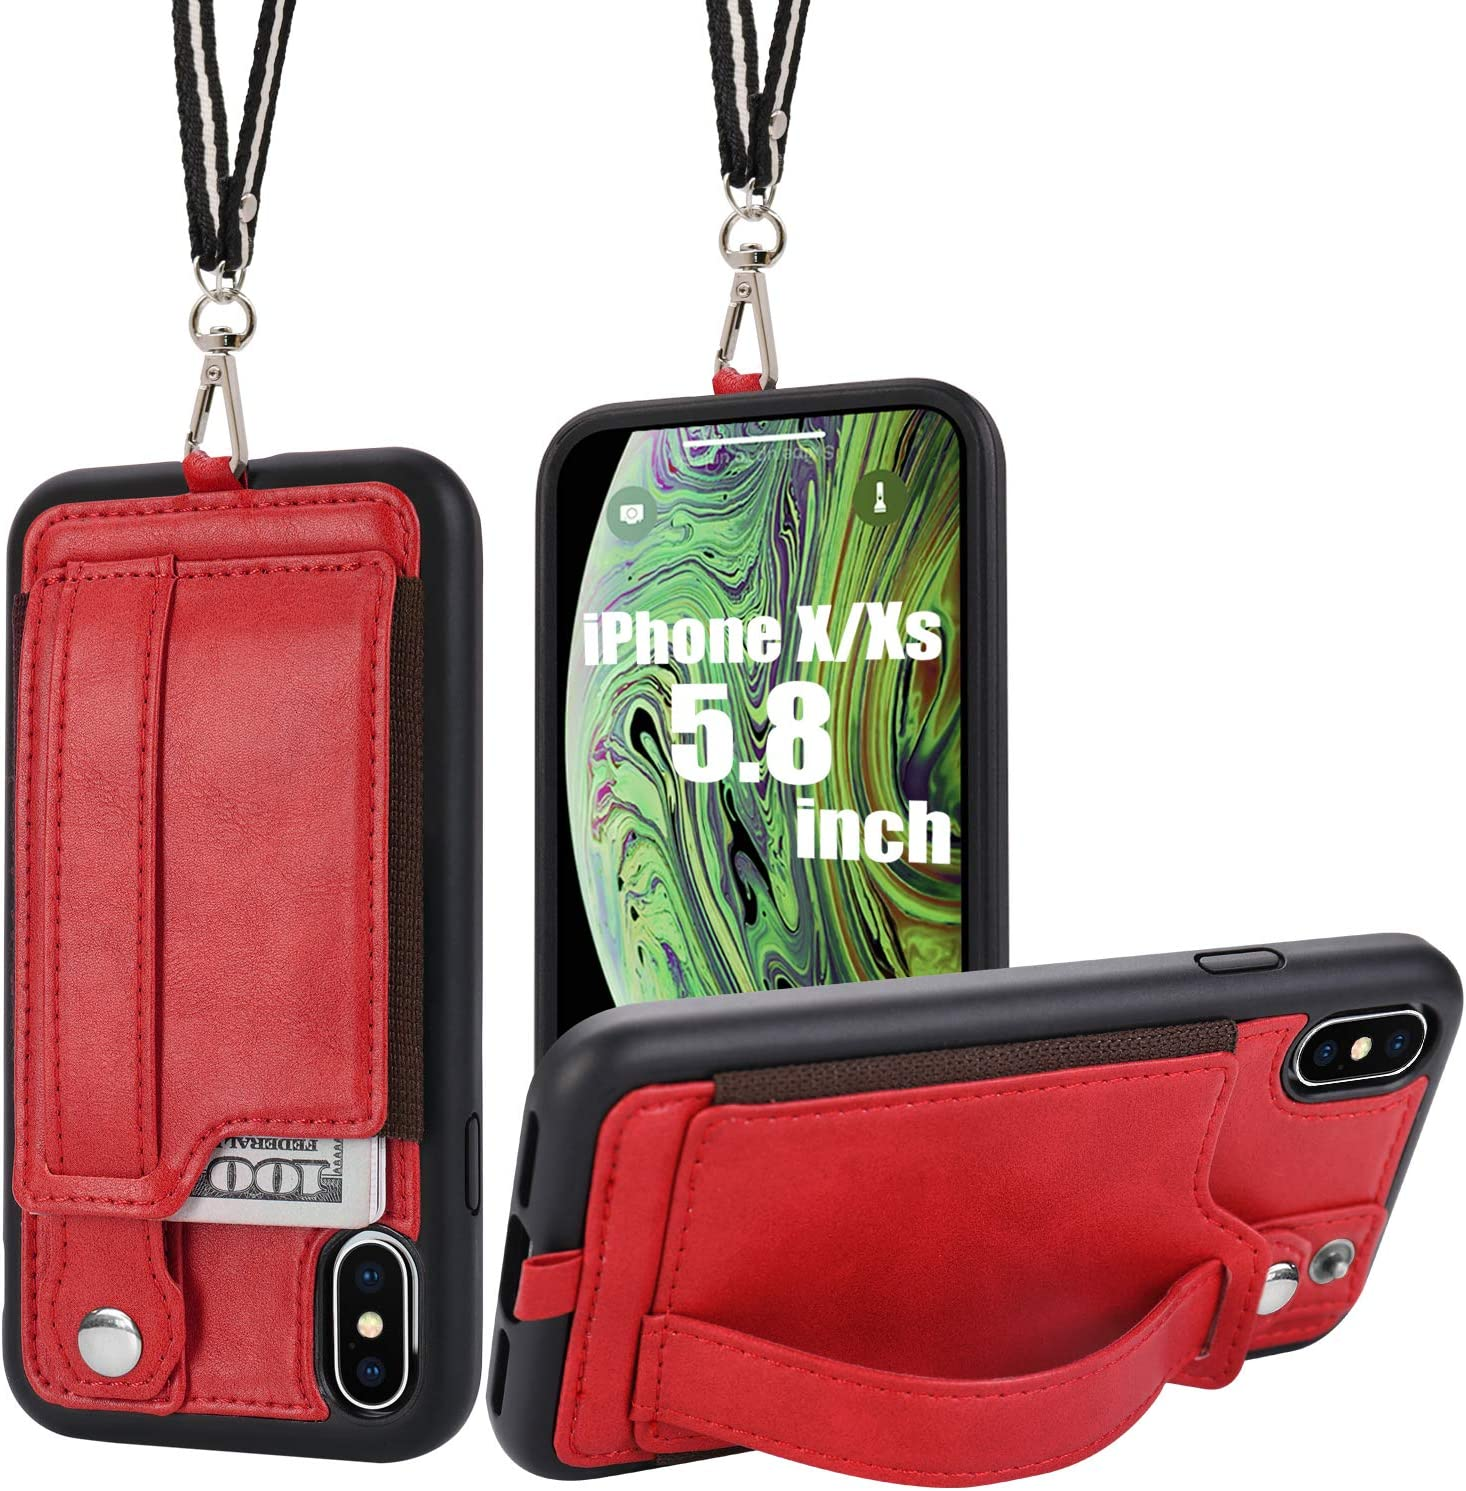 TOOVREN iPhone X/Xs Wallet Case Phone Lanyard Neck Strap iPhone Xs / 10 Protective Case Cover with Stand Leather PU Card Holder Adjustable Detachable iPhone Lanyard for Anti-Theft and Activity Red